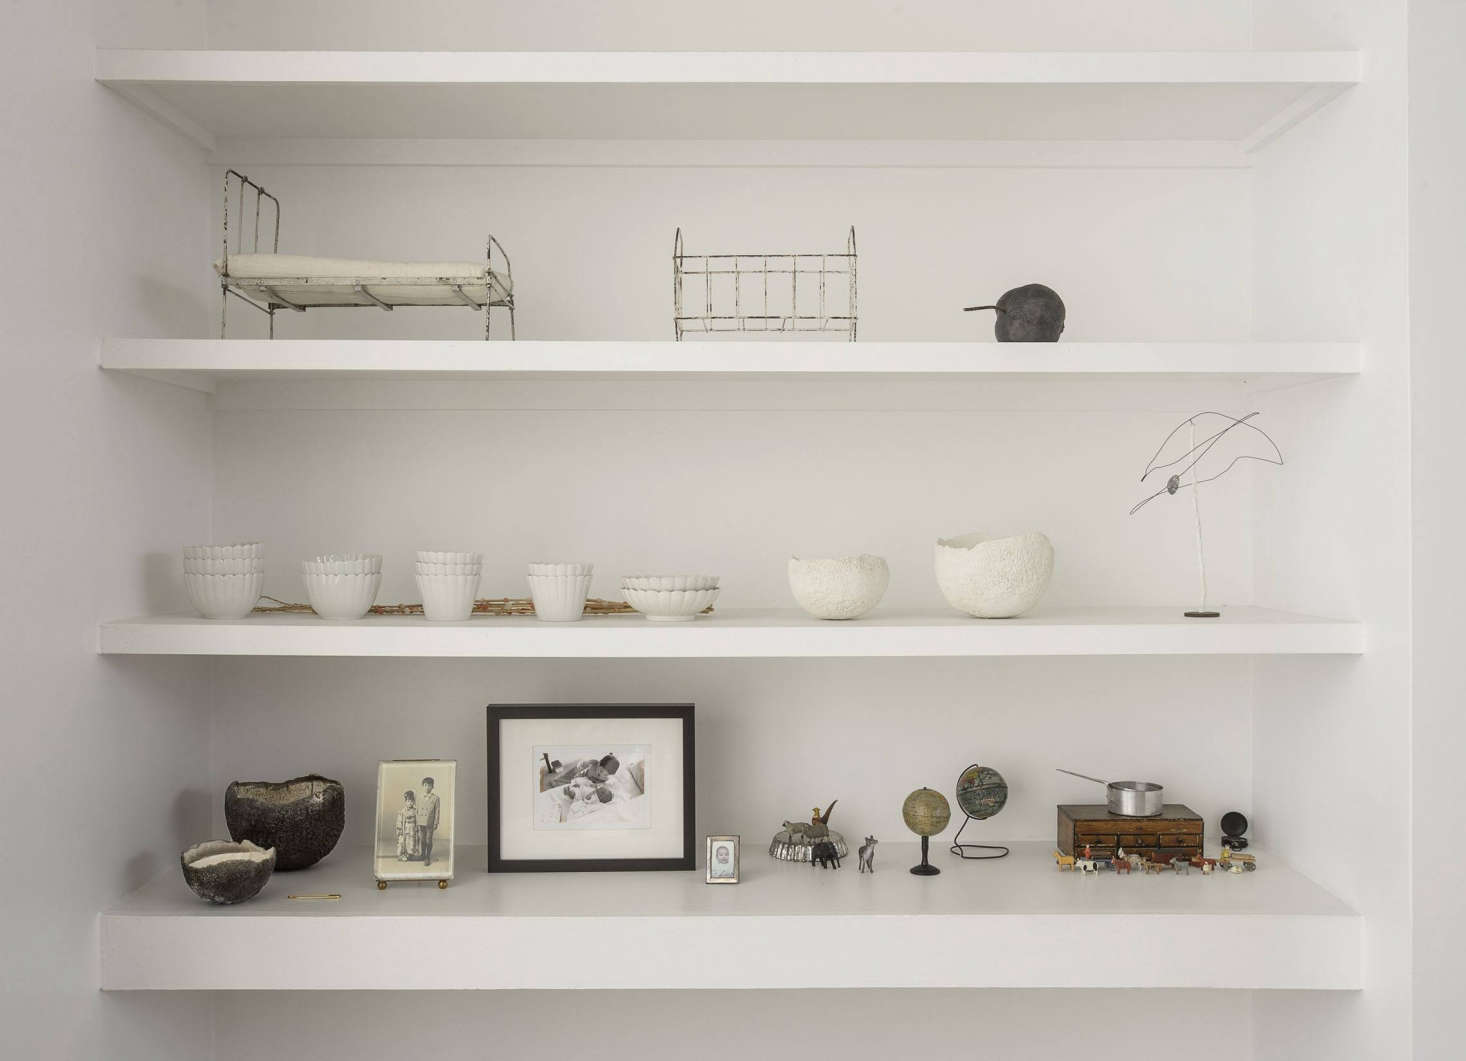 A closer look at Makié's collections; on the center shelf are 0-year-old Japanese Koimari cups and plates andGenevieve Chevallierbowls.